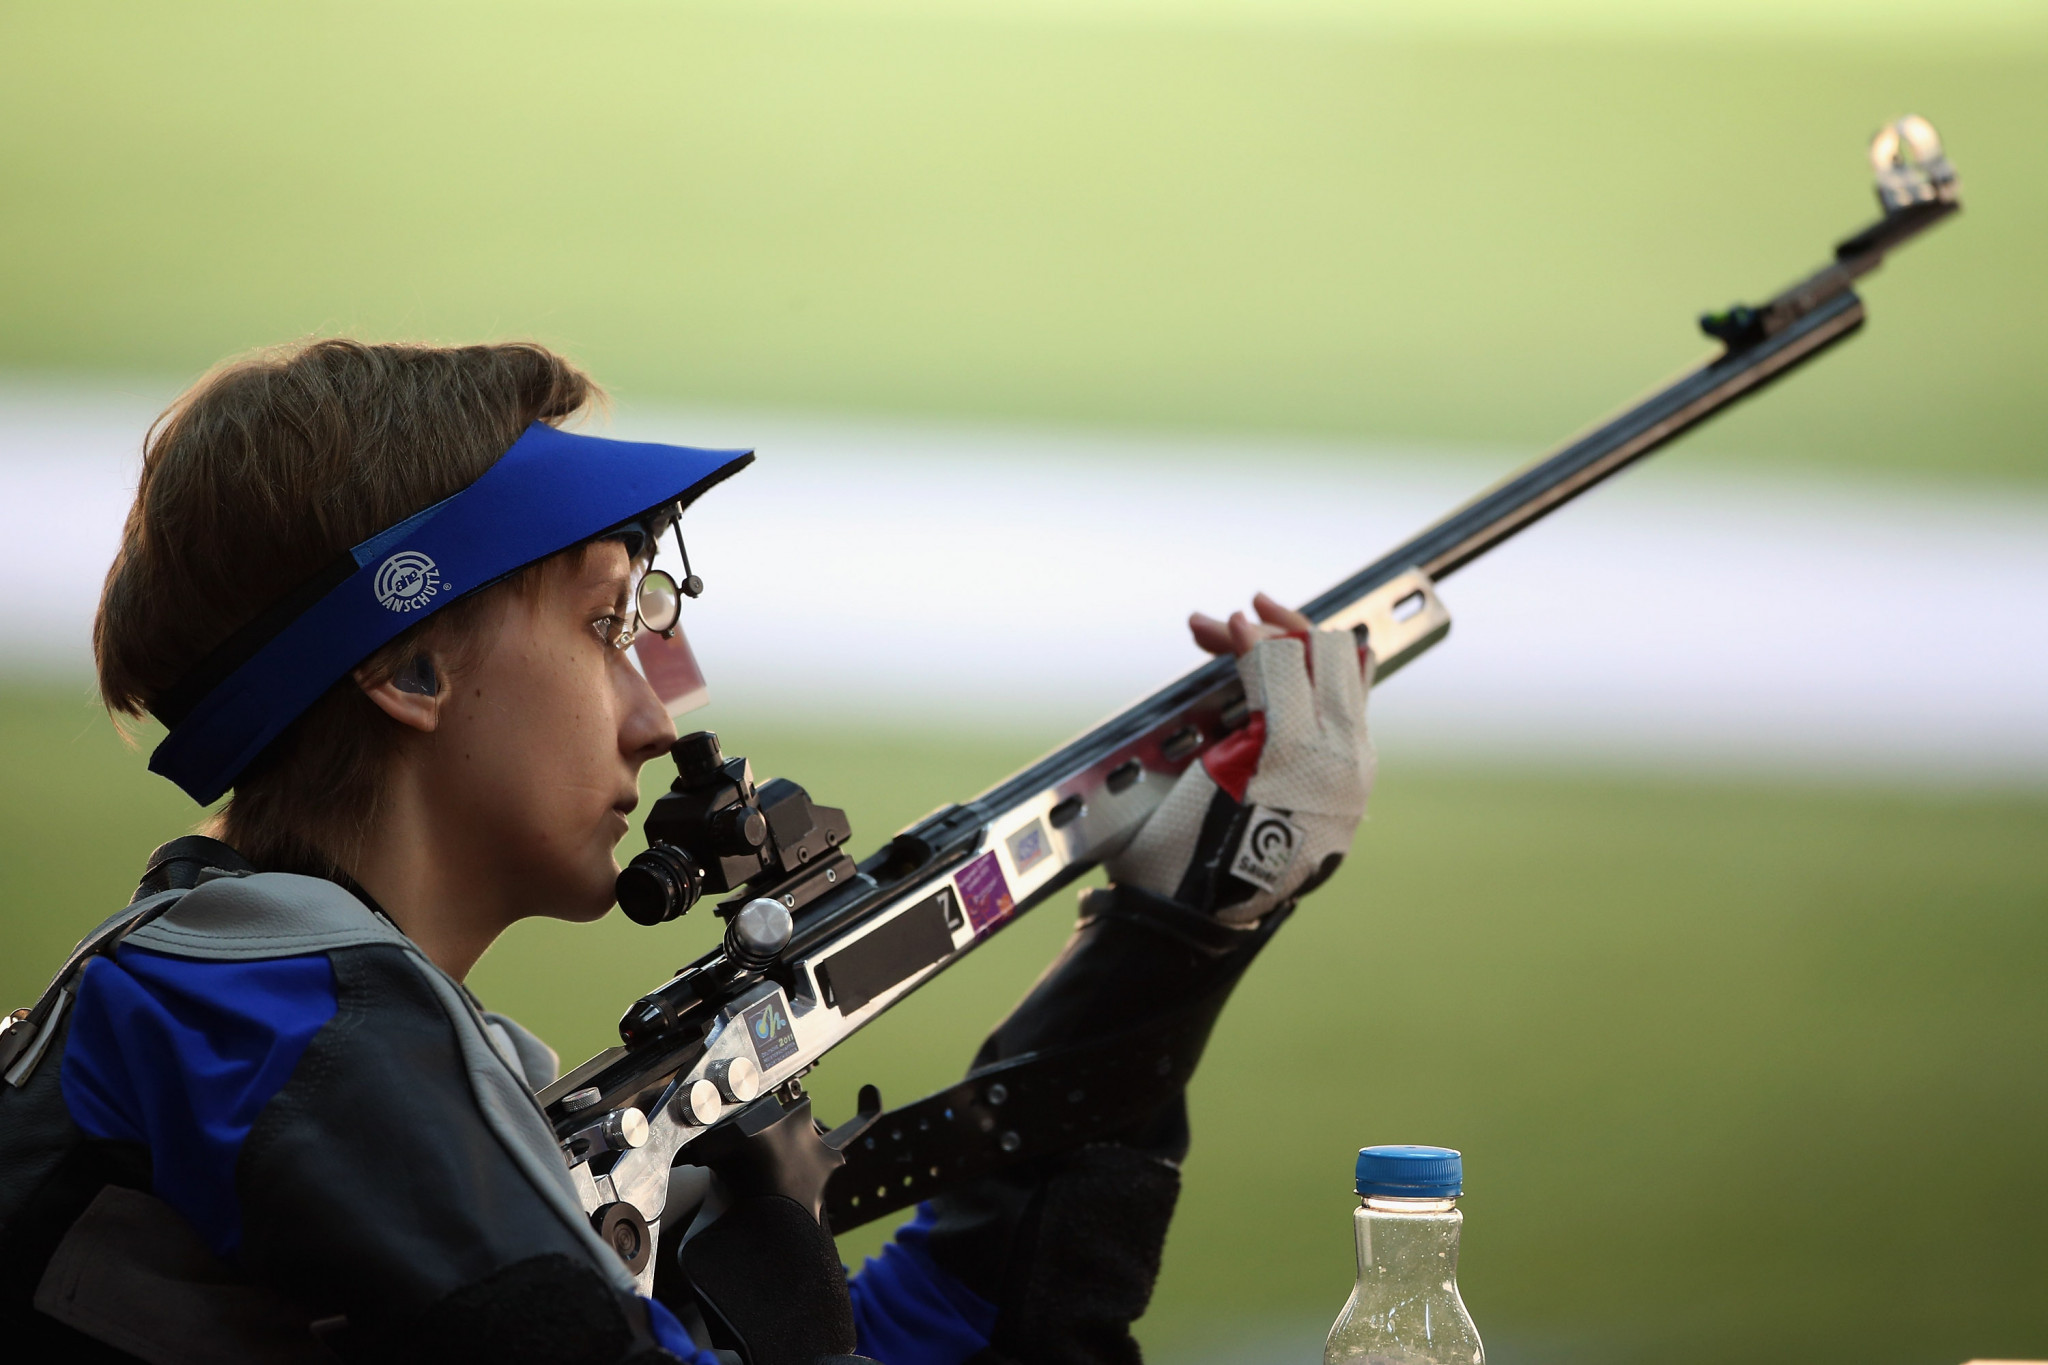 Hiltrop and Ristic claim air rifle prone Paralympic golds in shooting